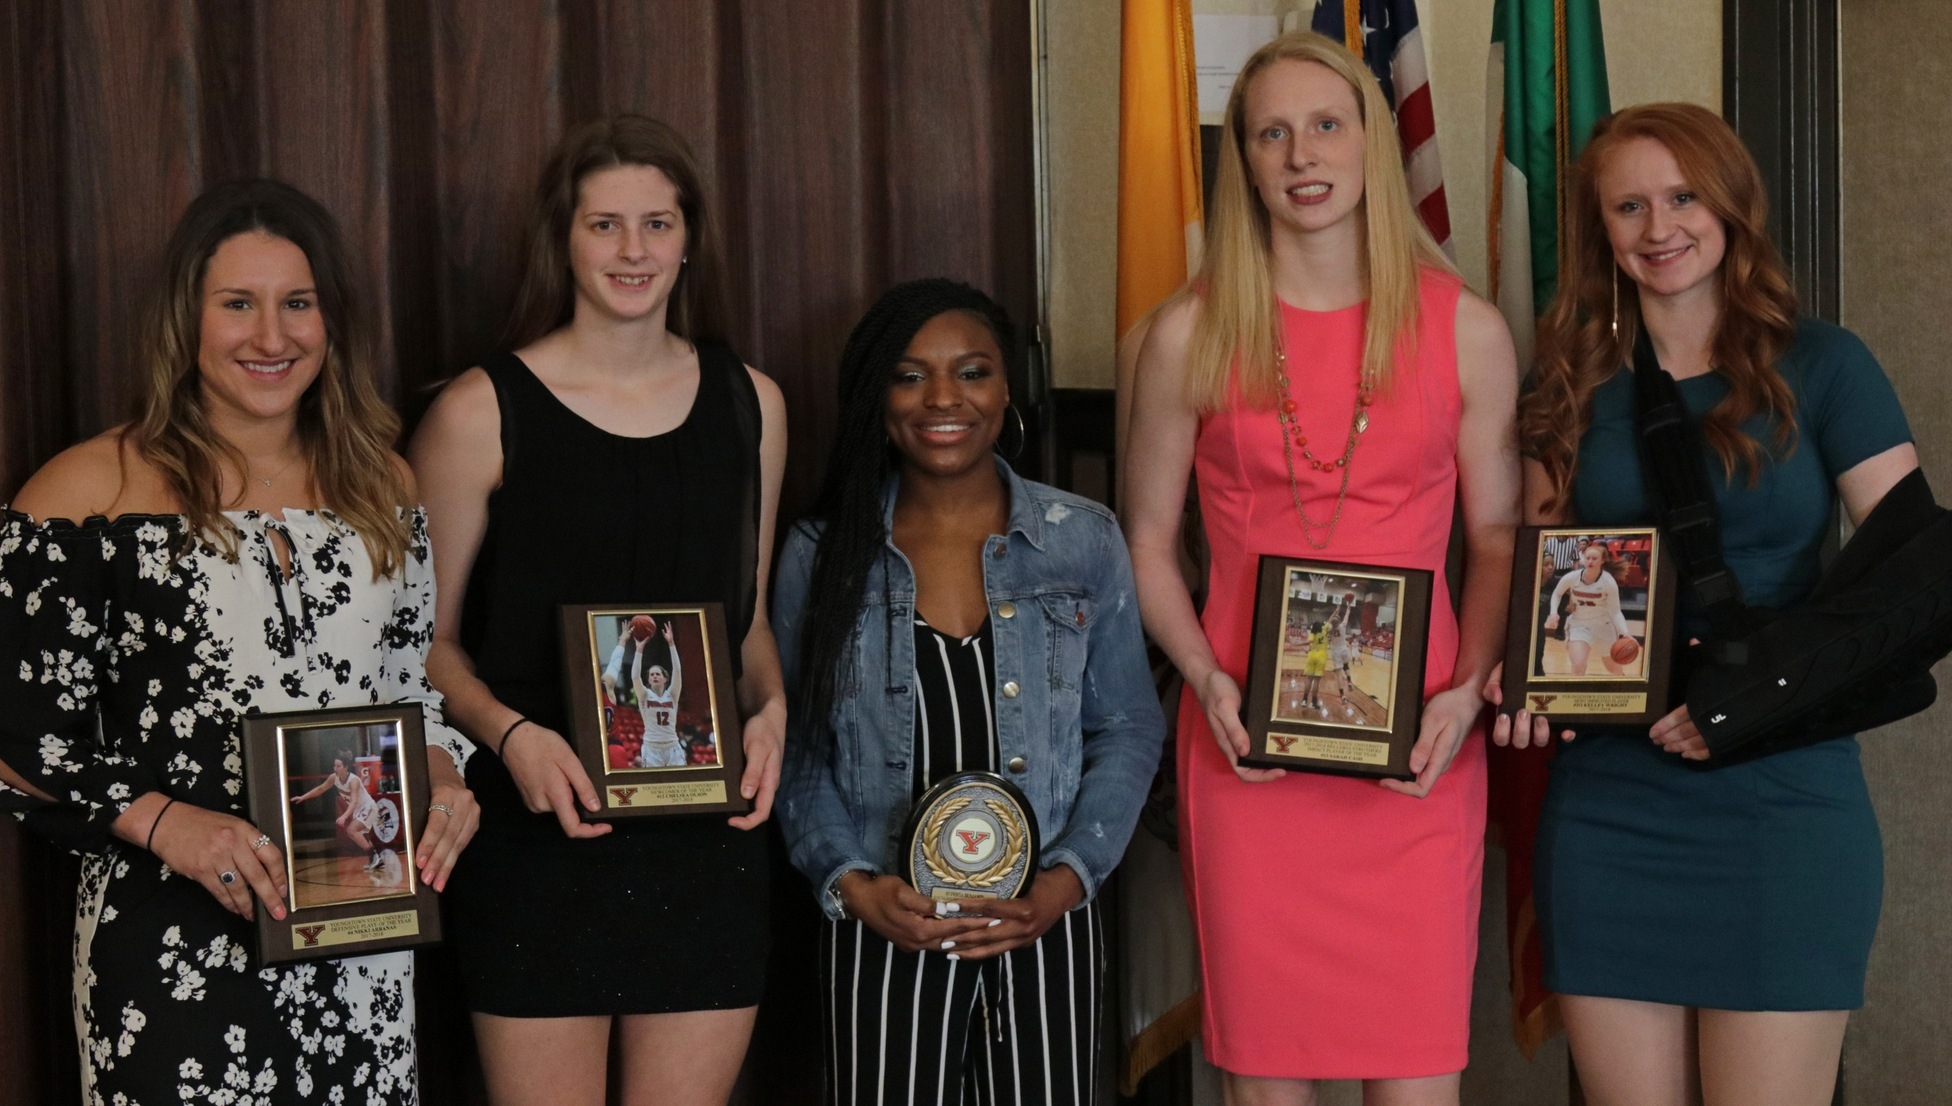 Nikki Arbanas, Chelsea Olson, Indiya Benjamin, Sarah Cash and Kelley Wright earned awards at the 2017-18 YSU Women's Basketball Postseason Banquet